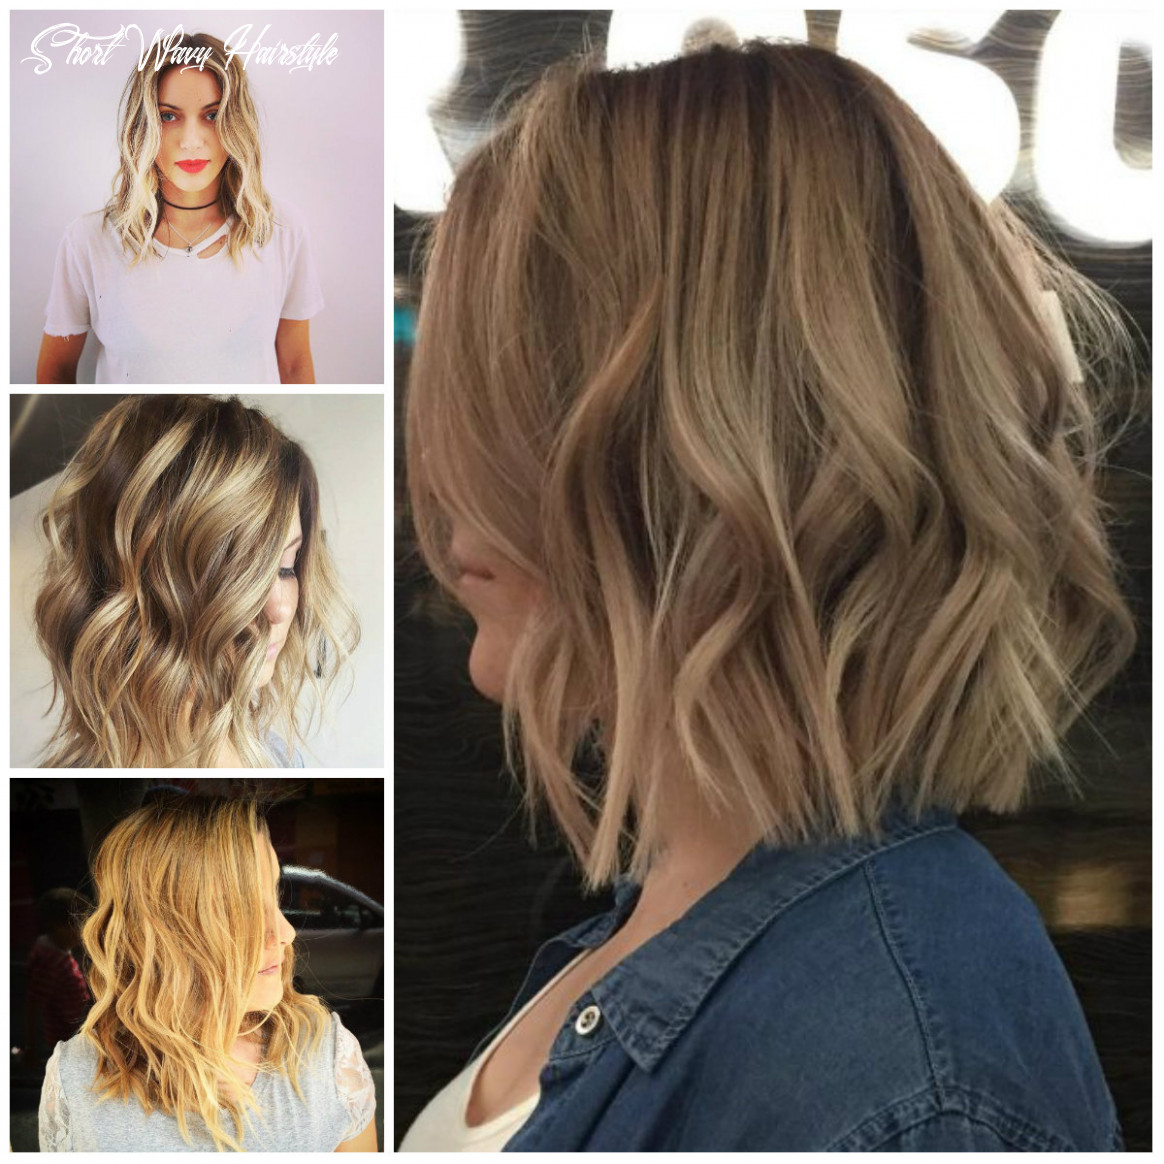 Stylish short wavy hairstyles for 11 | 11 haircuts, hairstyles